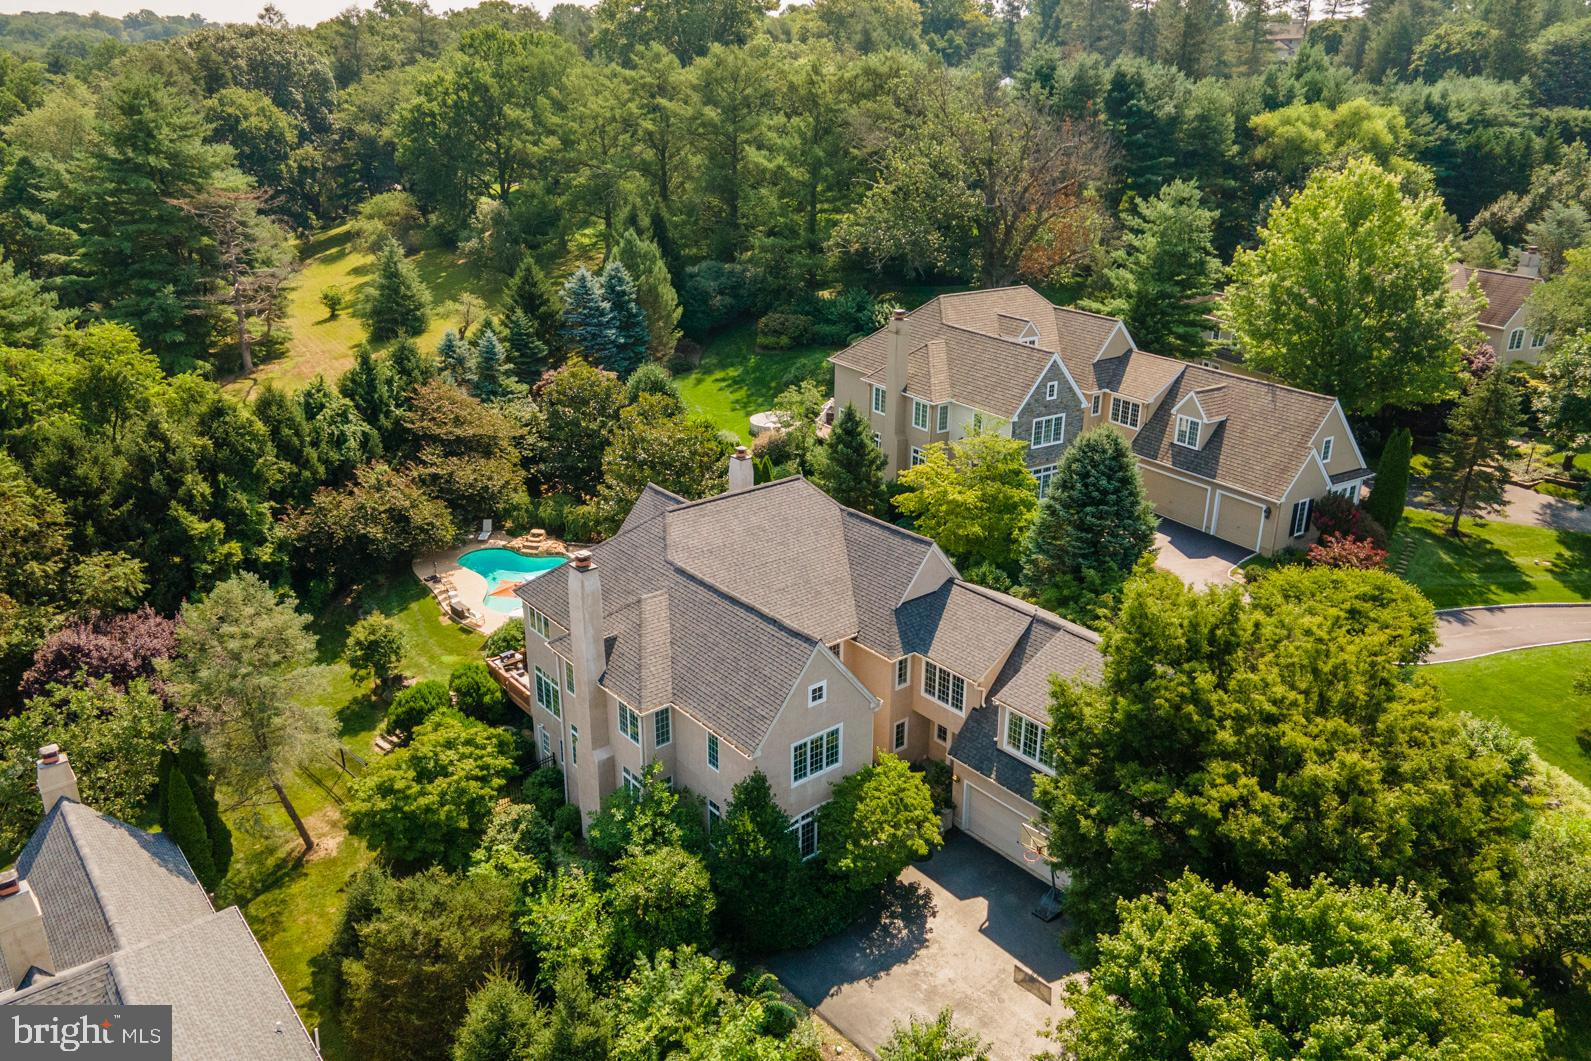 This beautiful transitional Colonial home sits notably on a quiet cul-de-sac with a private backyard amidst an active and coveted neighborhood of 30 homes.  Your own oasis: the entry awaits with loads of natural light and a two-story foyer that opens into a formal living room complete with fireplace and transitional millwork.  A spacious corner office is in the front.  Stunning hardwood floors lead your way from the living room to a large and light-soaked dining room adorned with two massive picture windows.  The chef's kitchen features a large island with seating and commercial stainless steel gas Viking cooktop, double ovens and refrigerator.  There is little end to the storage this kitchen provides and also includes a command center/office, walk-in pantry and a considerable breakfast room with a wall to wall window and captivating natural views - it's all about the light in this home.  A family room open to the kitchen boasts tremendous windows and vaulted ceiling height offering a front row seat to yet another spectacular view, home to the second fireplace and access to the deck and outdoor entertaining space including an inviting pool with a waterfall and spa. Upstairs has a great primary suite with a sitting room, massive walk-in closet and dressing area, spacious marble bath with a large jetted soaking tub and double shower with a rain head and two handhelds. Three more bedrooms with ample closets, a homework/classroom open area off of the back stairs and 2 more full baths finish this floor. The daylight, walk out lower level comes with a guest / au-pair room, full bath, wet bar with seating, screening area/movie theater, and room for a home gym and or/game tables. There is a central vacuum, a sprinkler irrigation system and a security system. It is less than 4 miles to the Ardmore train station with Amtrak service to NYC. Be sure to check out the Matterport self-guided tour on the video icon. Find printable PDFs of the floor plans as an attachment in the doc